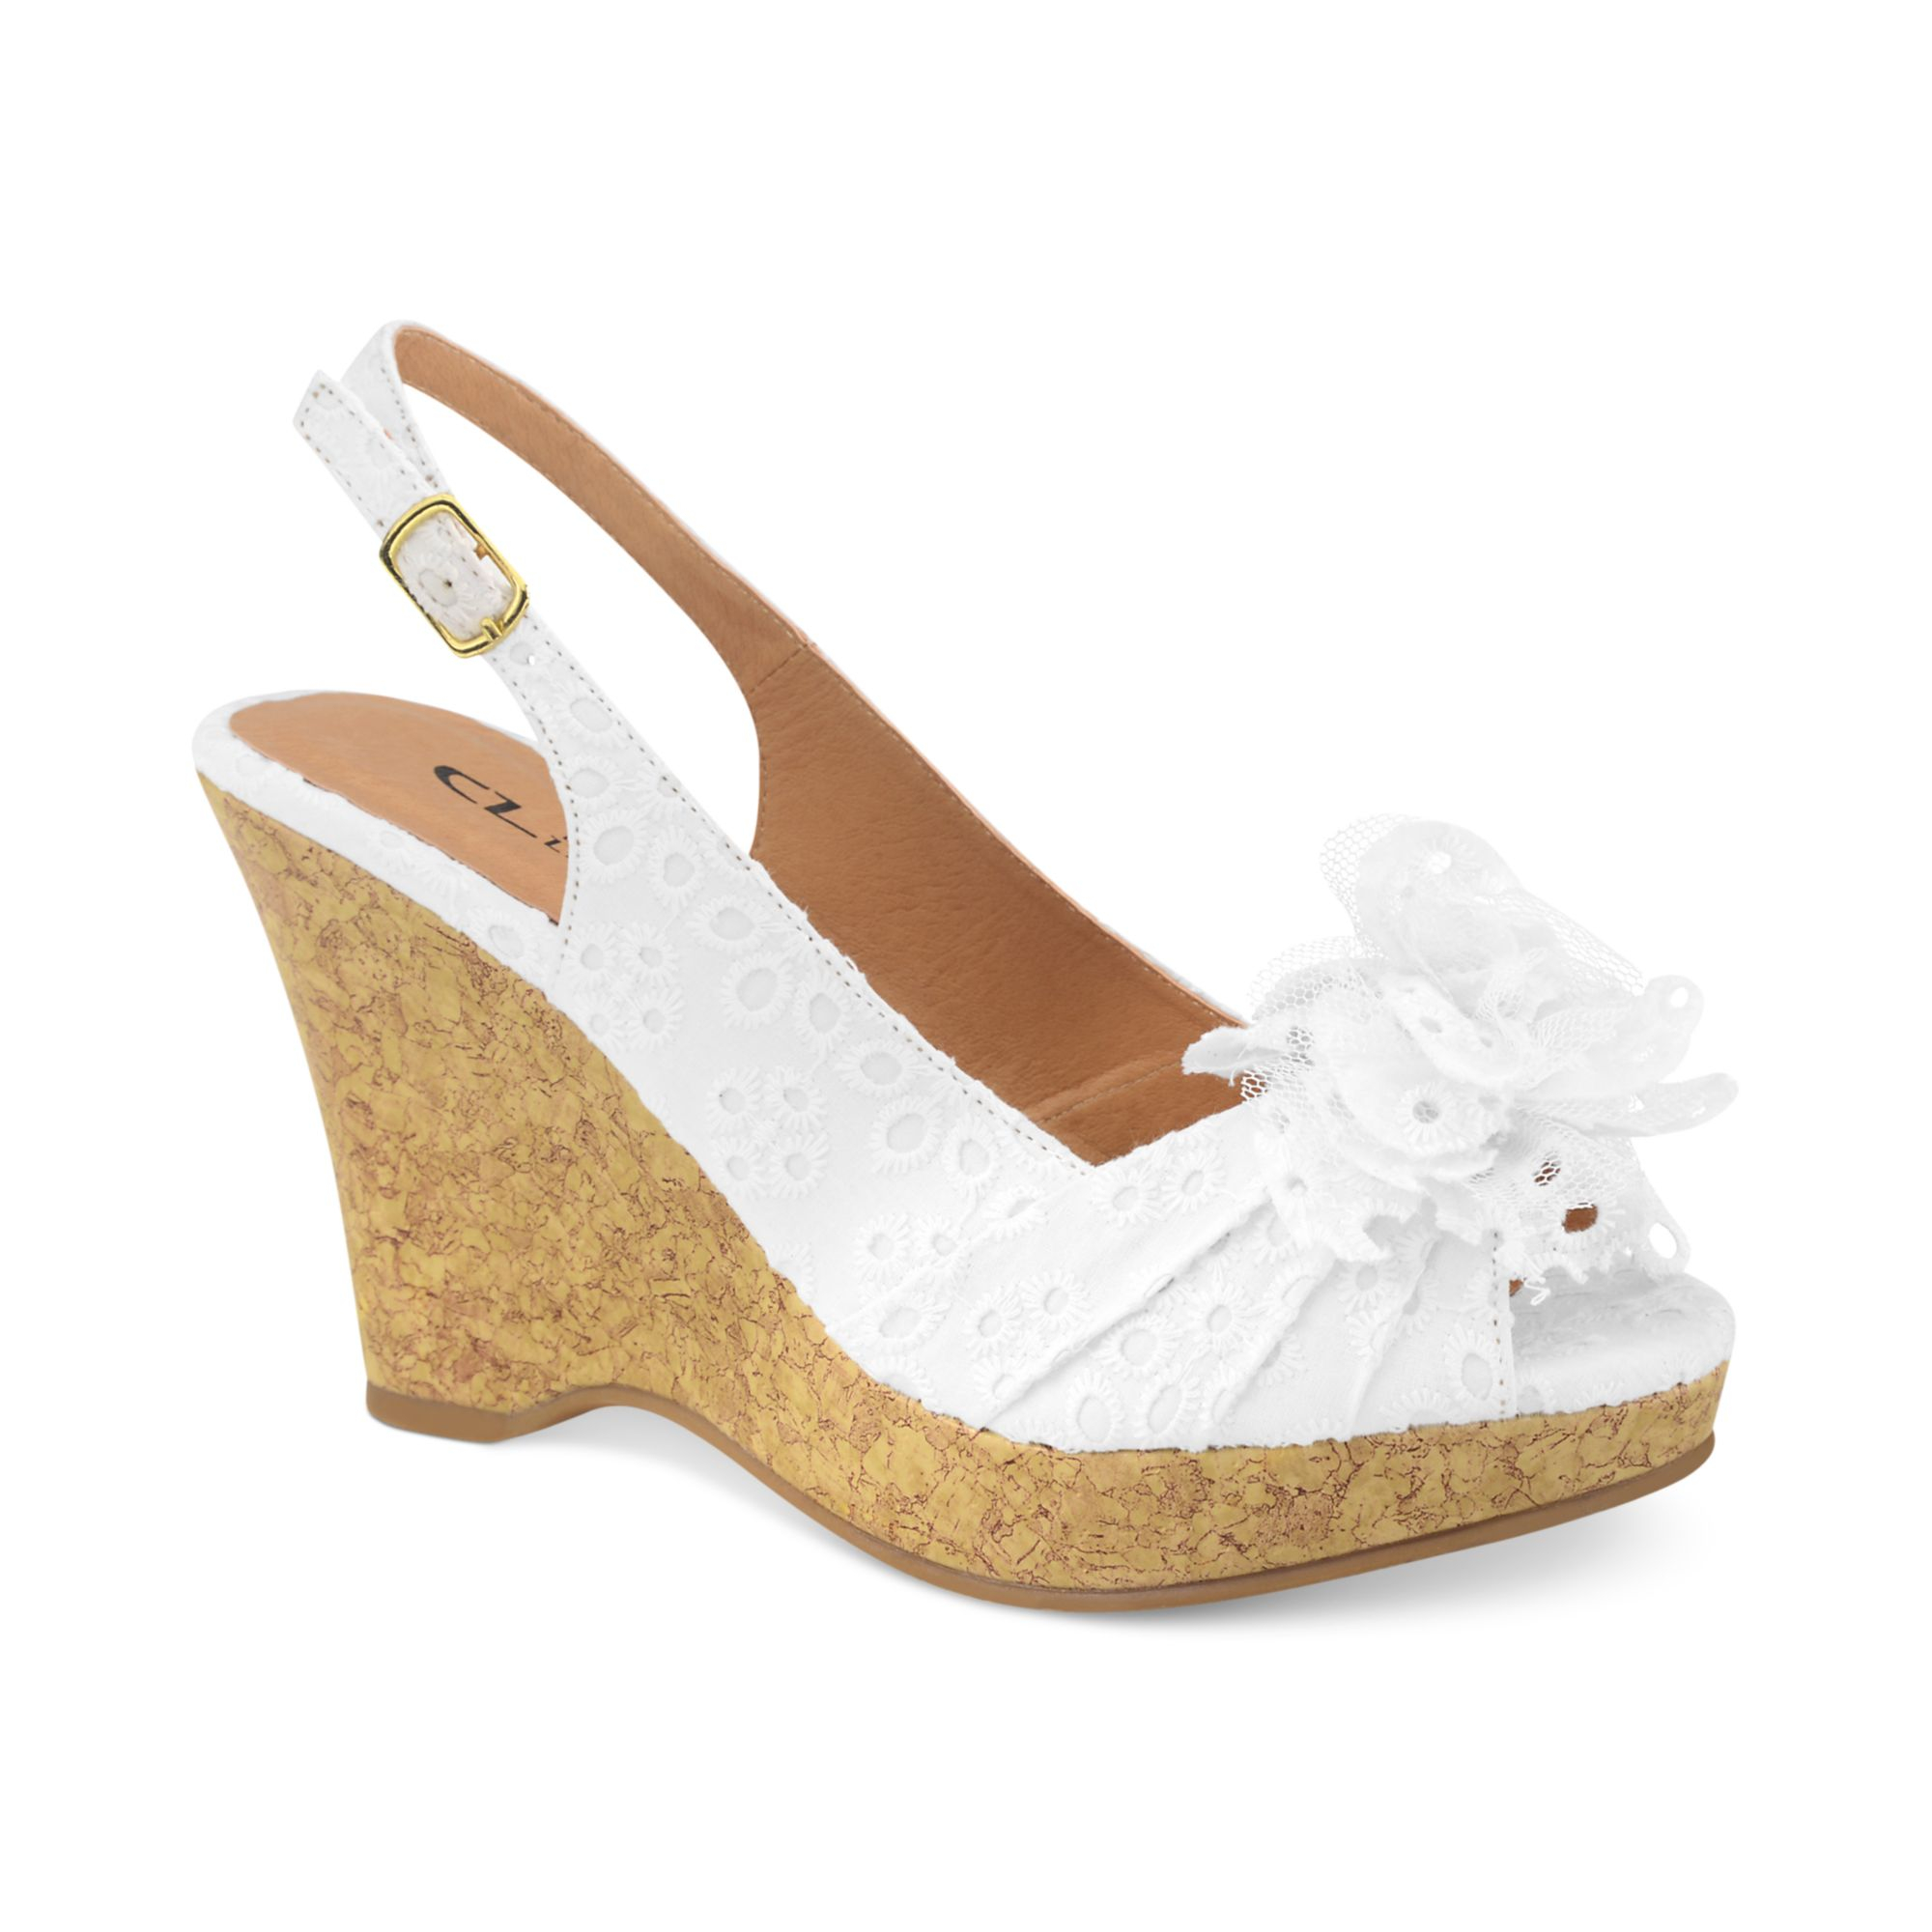 laundry cl by laundry platform wedge sandals